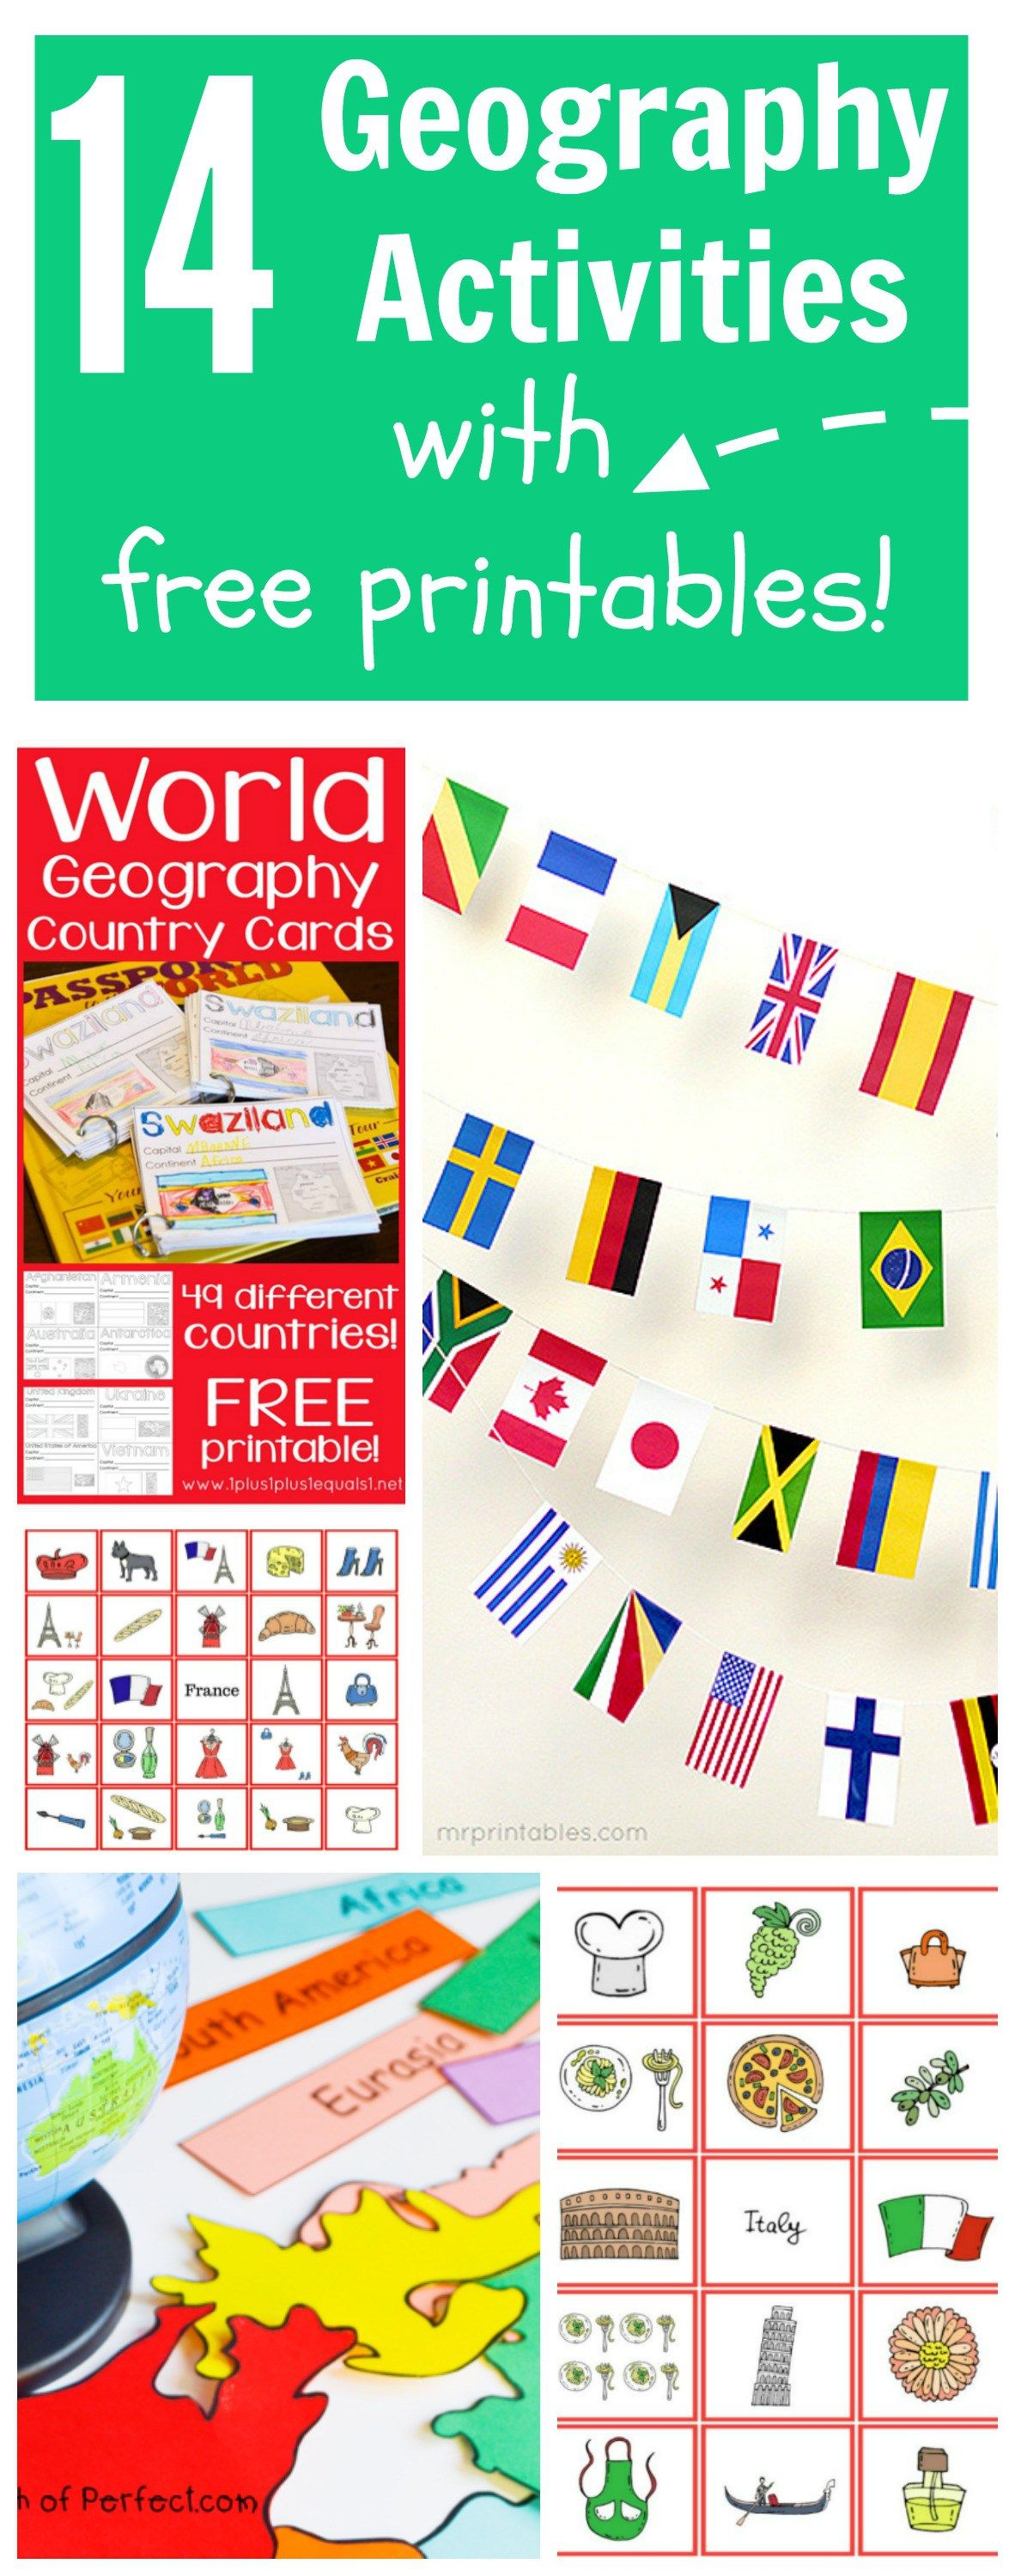 14 Geography Activities With Printables For Kids